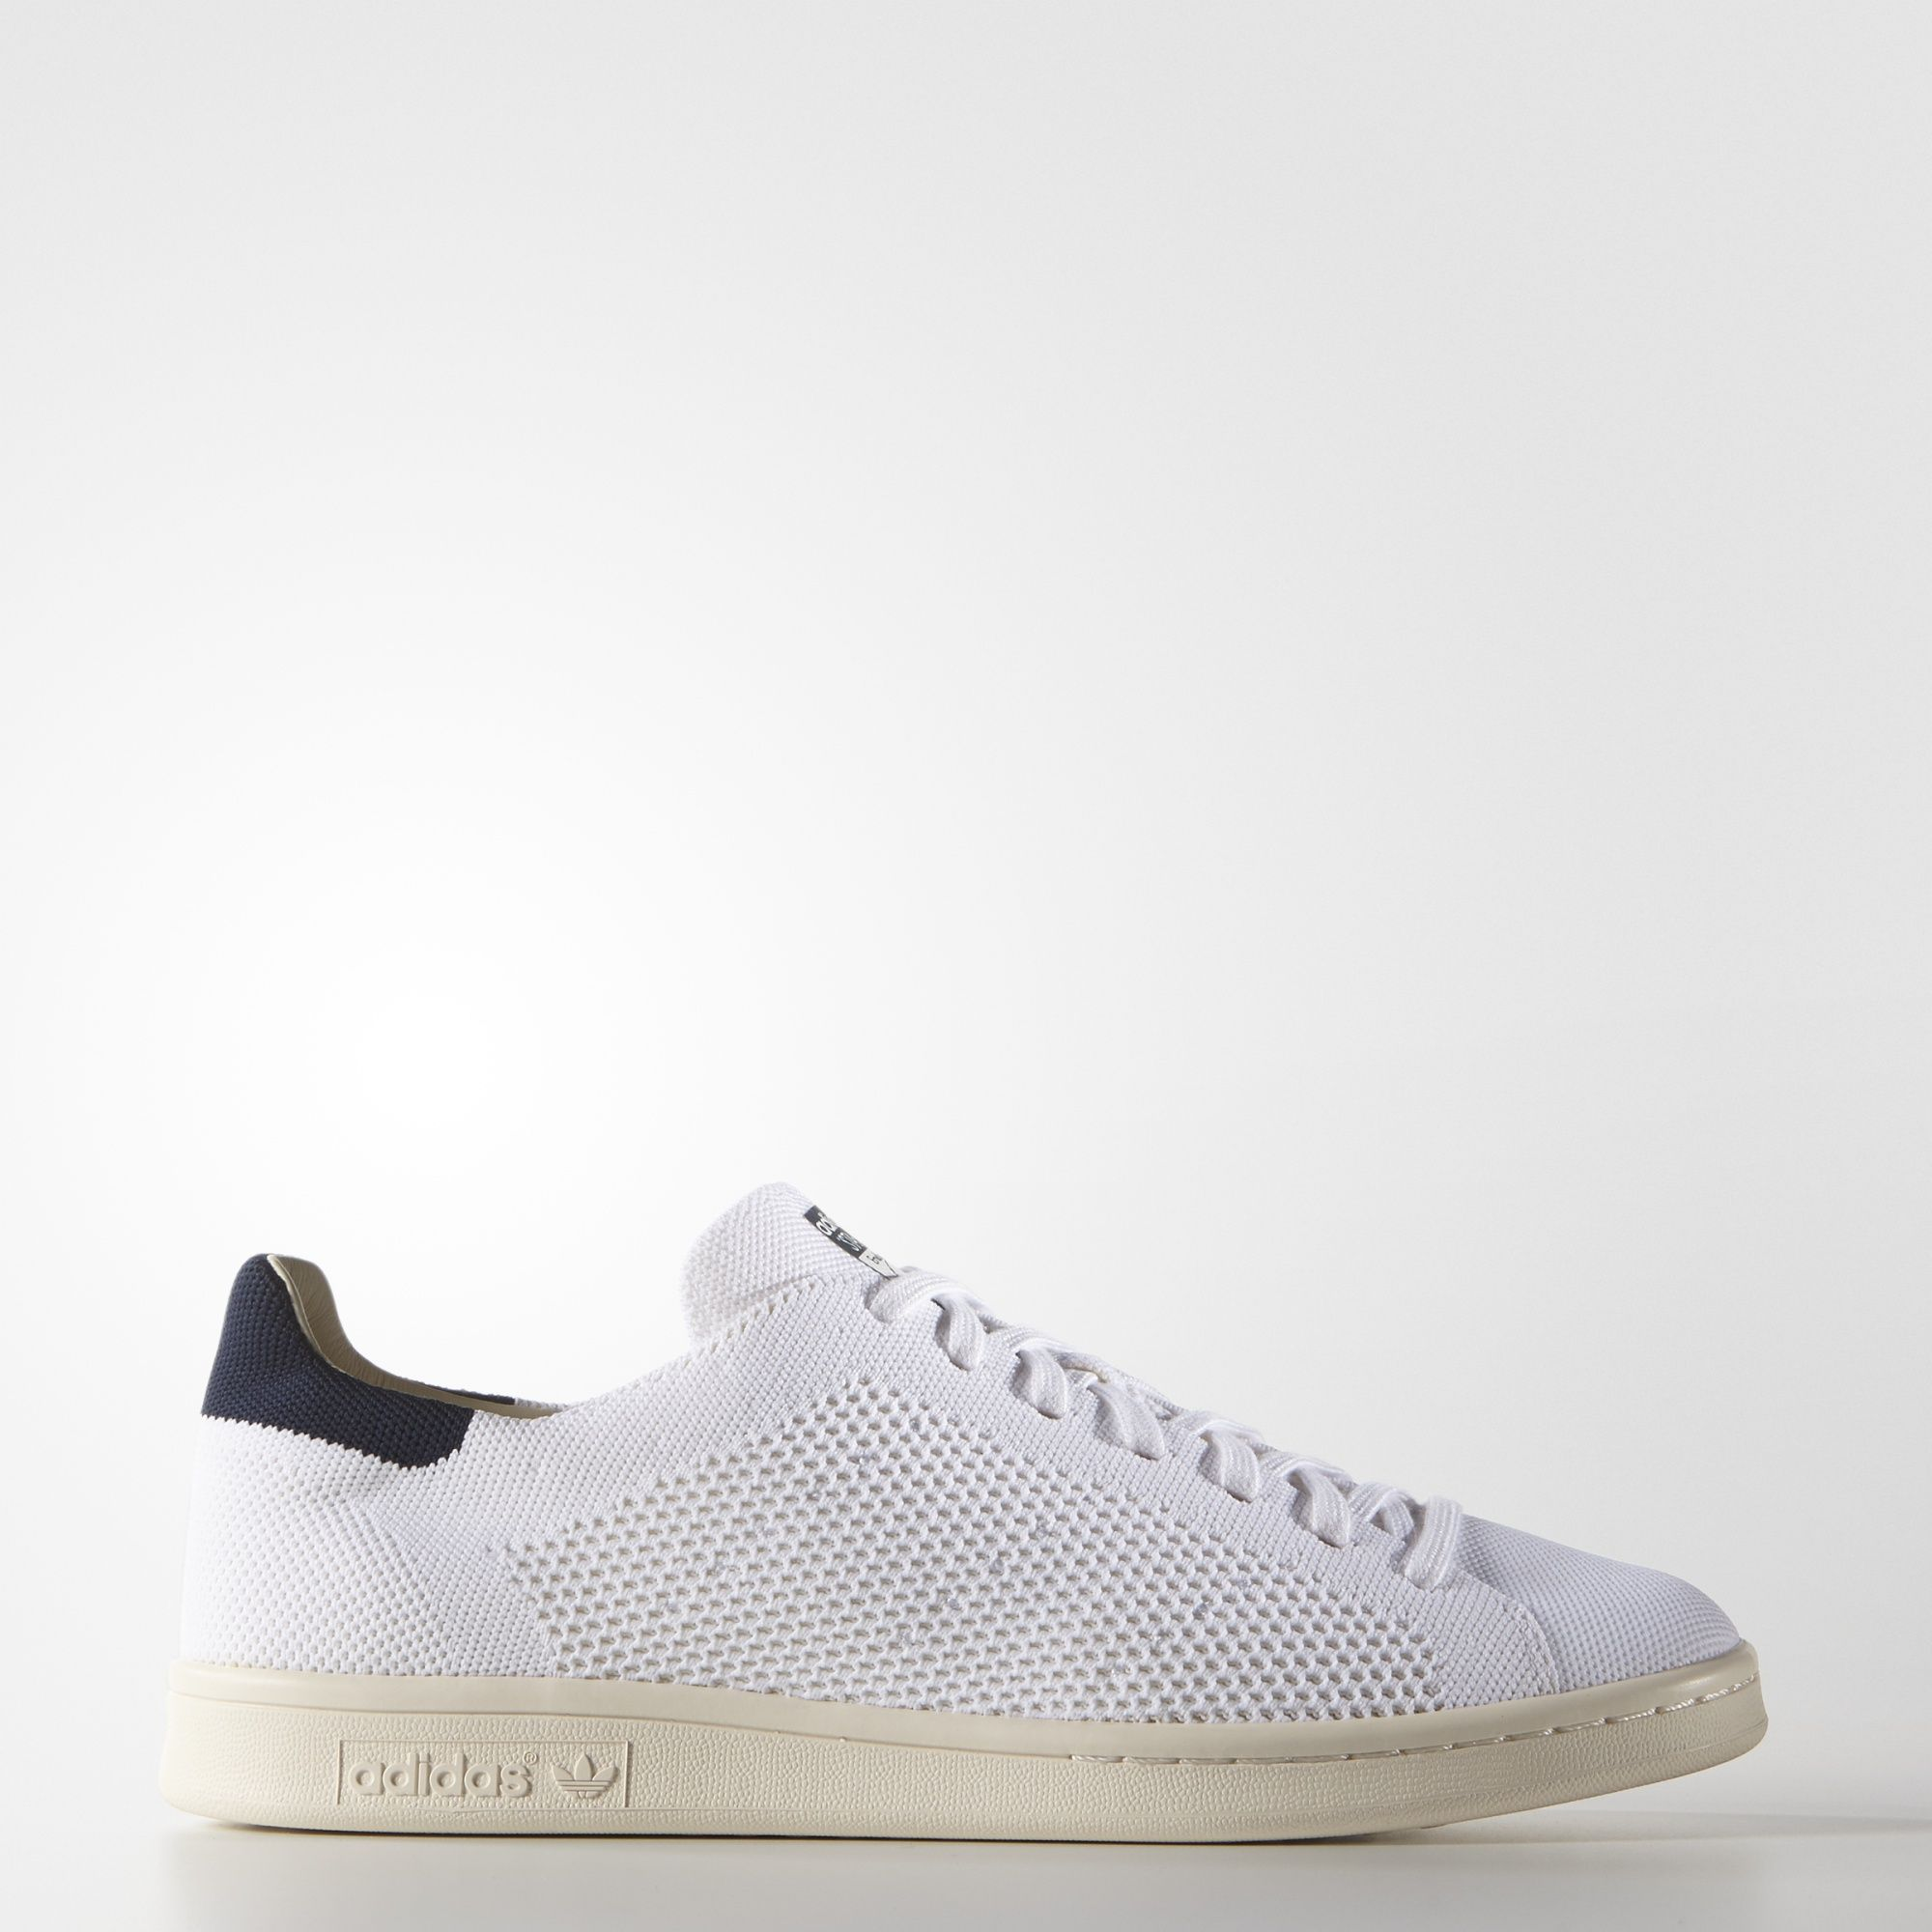 meet 22e38 56f05 A legacy adidas look, the Stan Smith gets a modern update with an adaptive adidas  Primeknit upper. These shoes serve up the same crisp, clean style with a ...